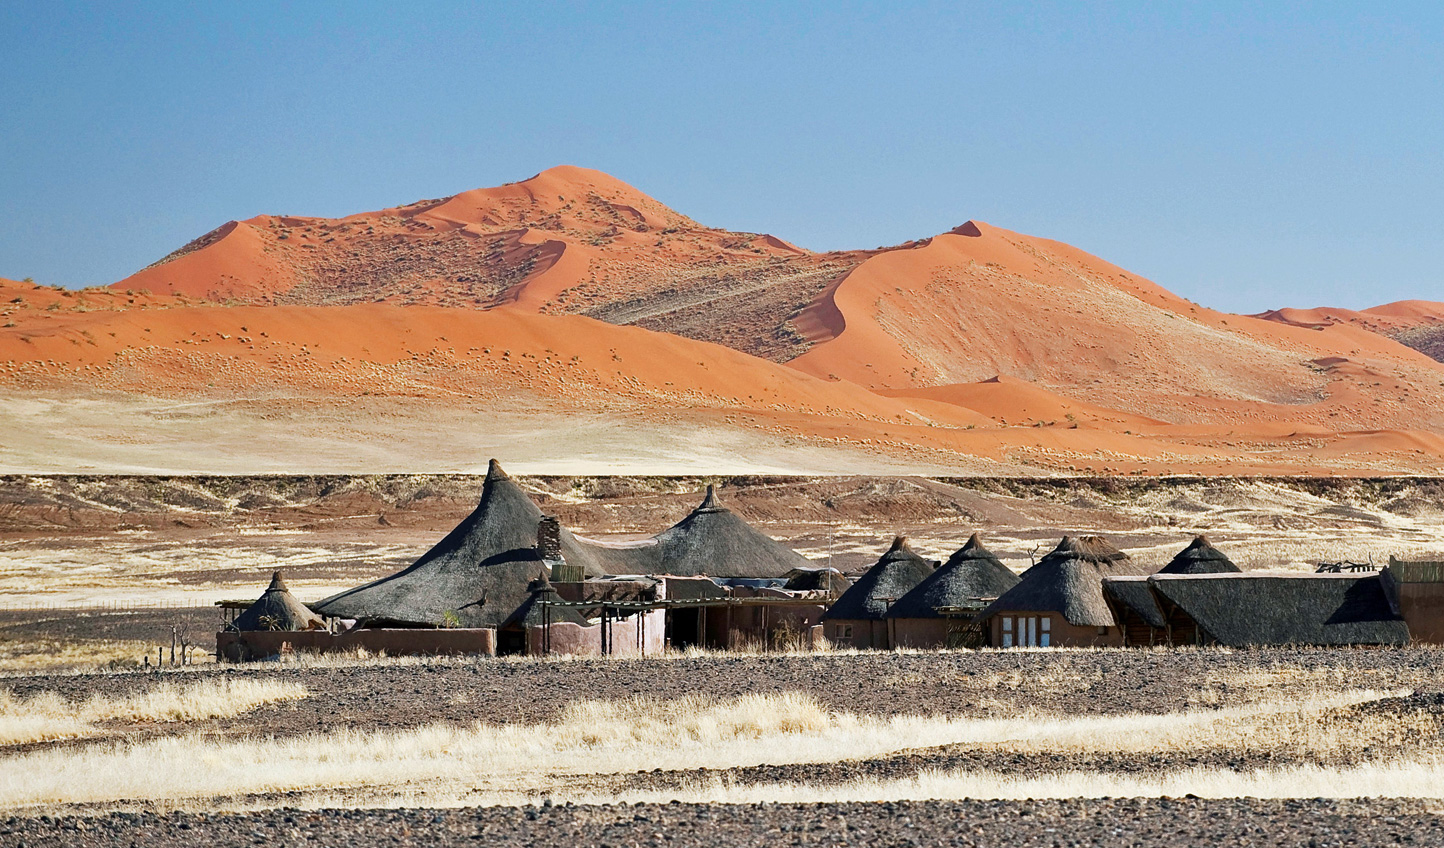 Kulala Desert Lodge is nestled in the Soussulvei dunes